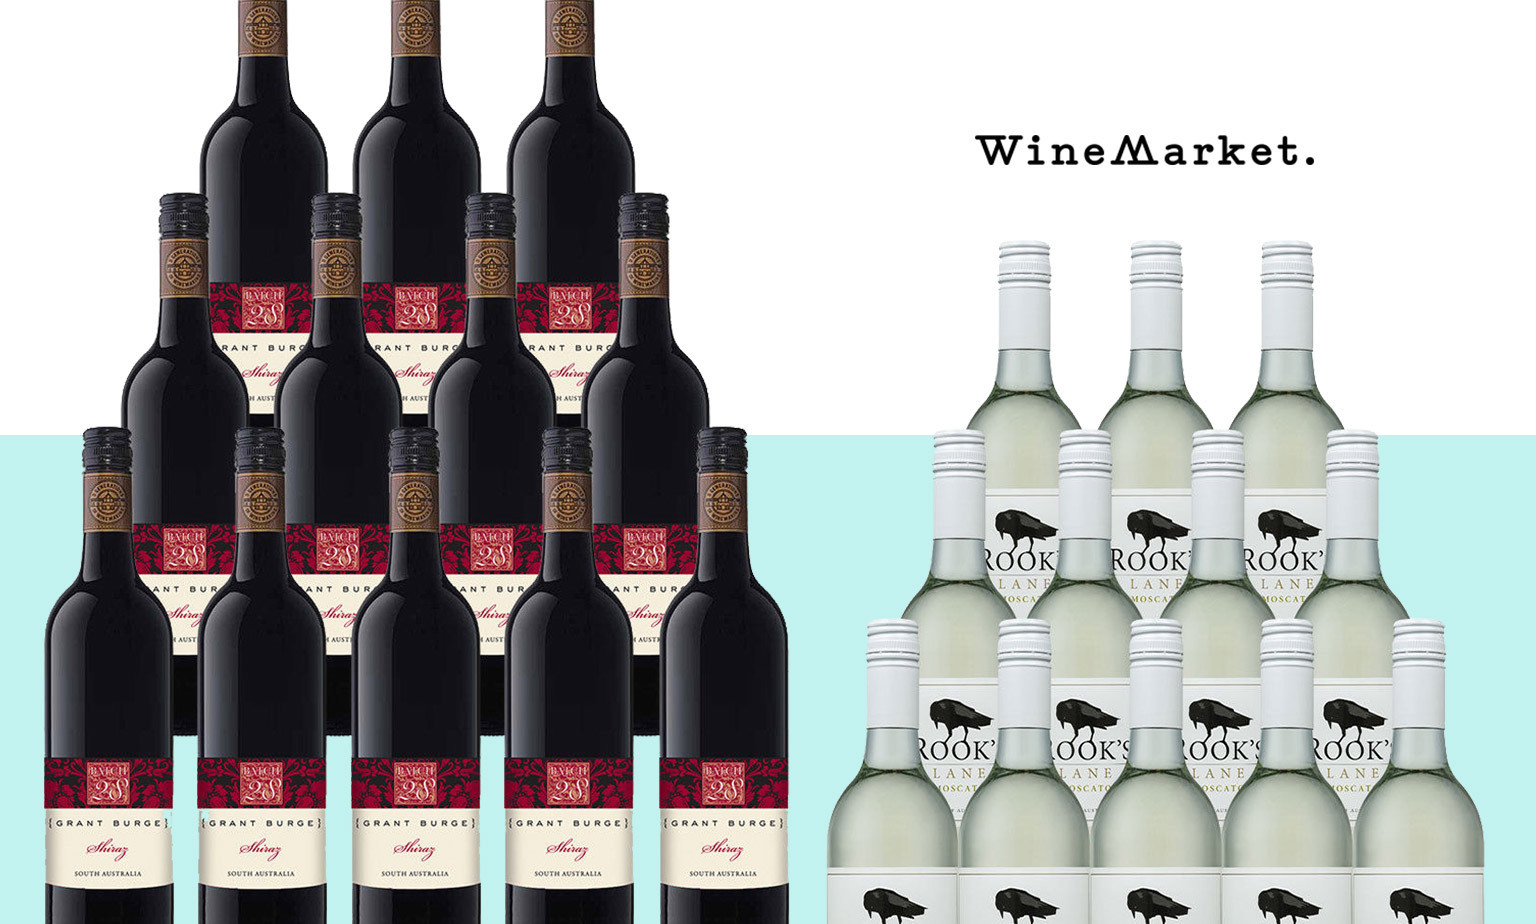 20% off* WineMarket